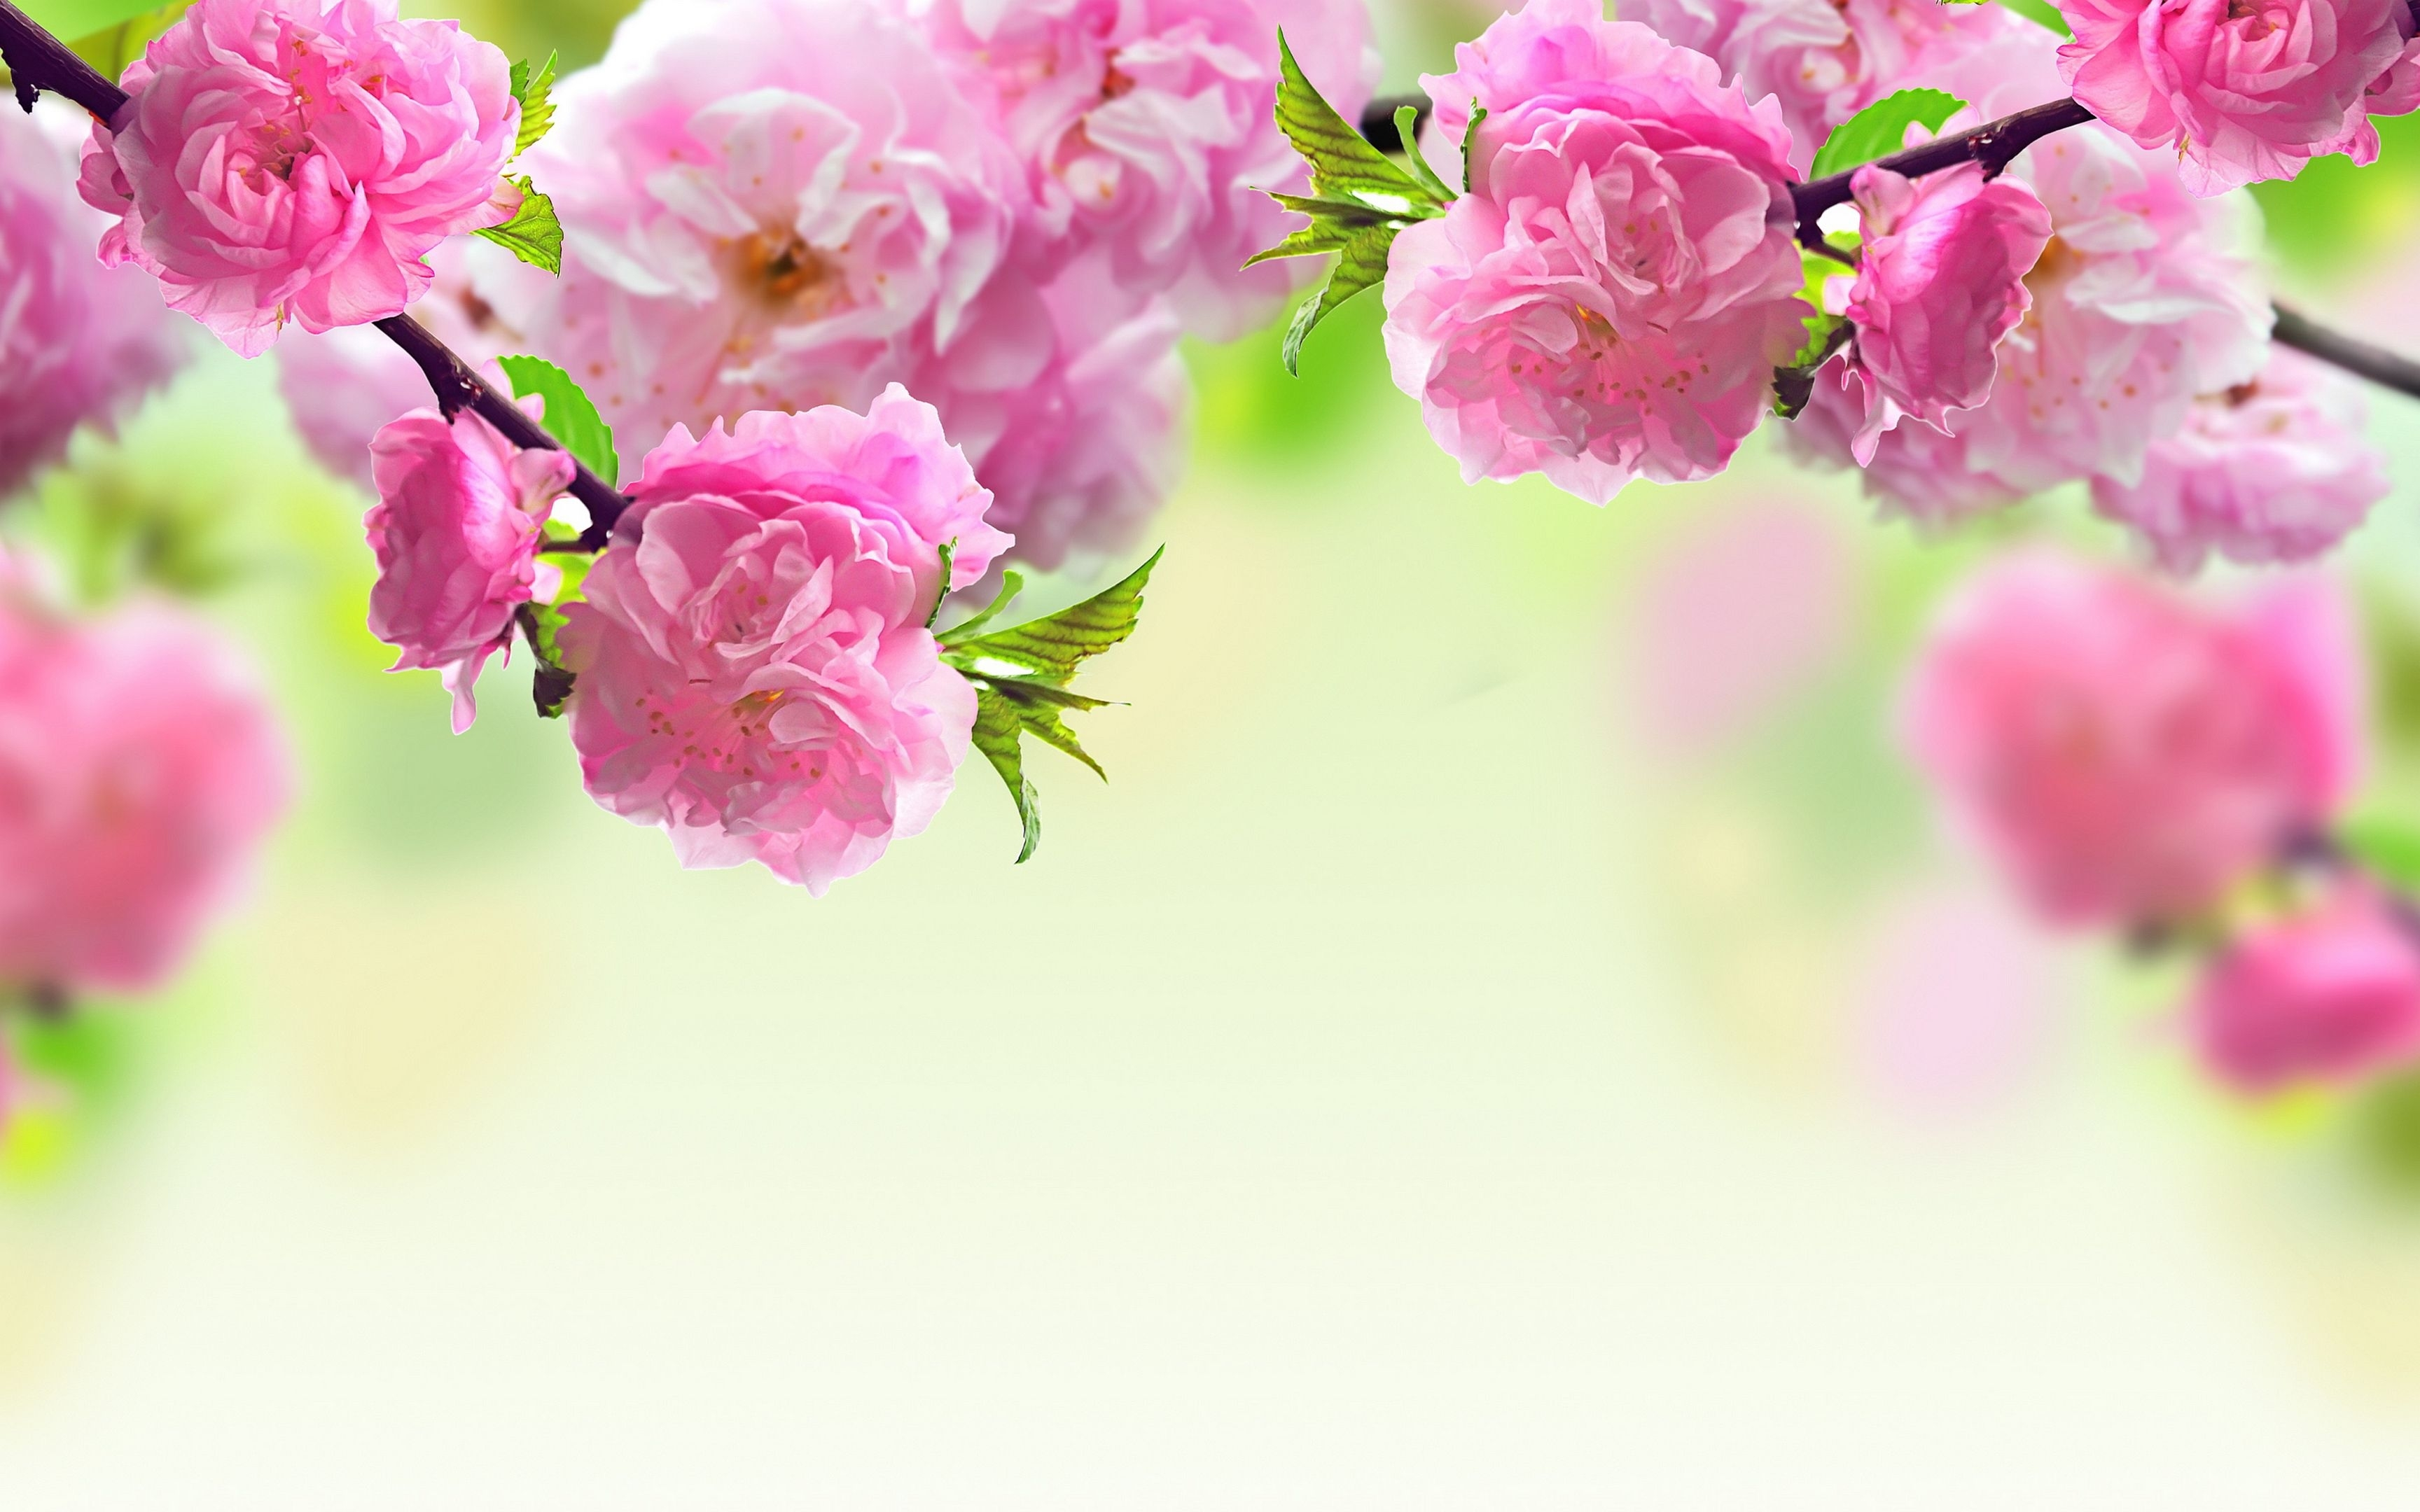 spring flowers wallpapers - http://wallpaperzoo/spring-flowers